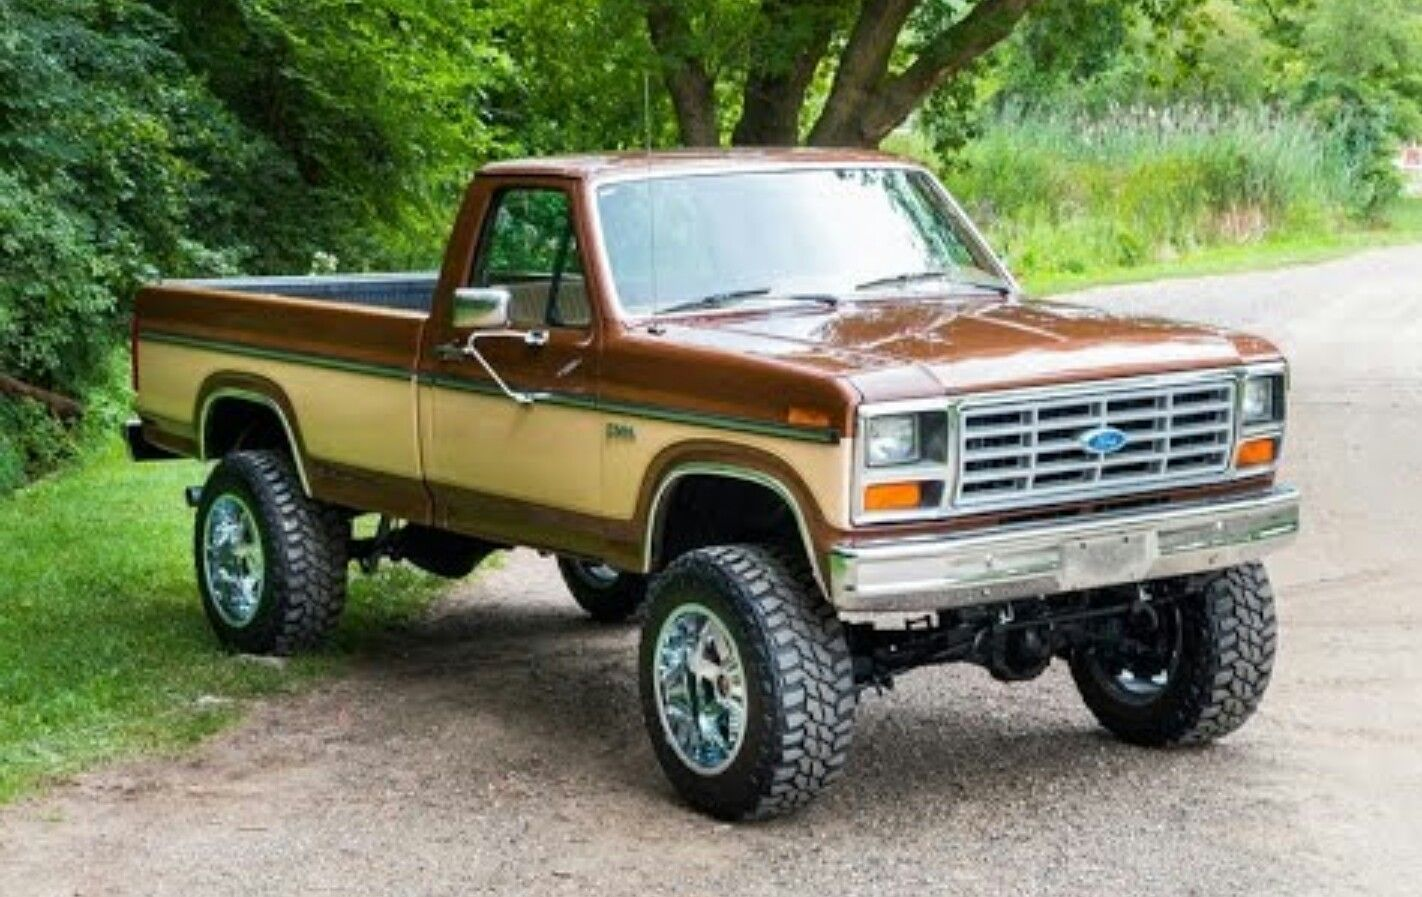 85 Ford 4x4 | Trucks | Pinterest | Ford 4x4, 4x4 and Ford